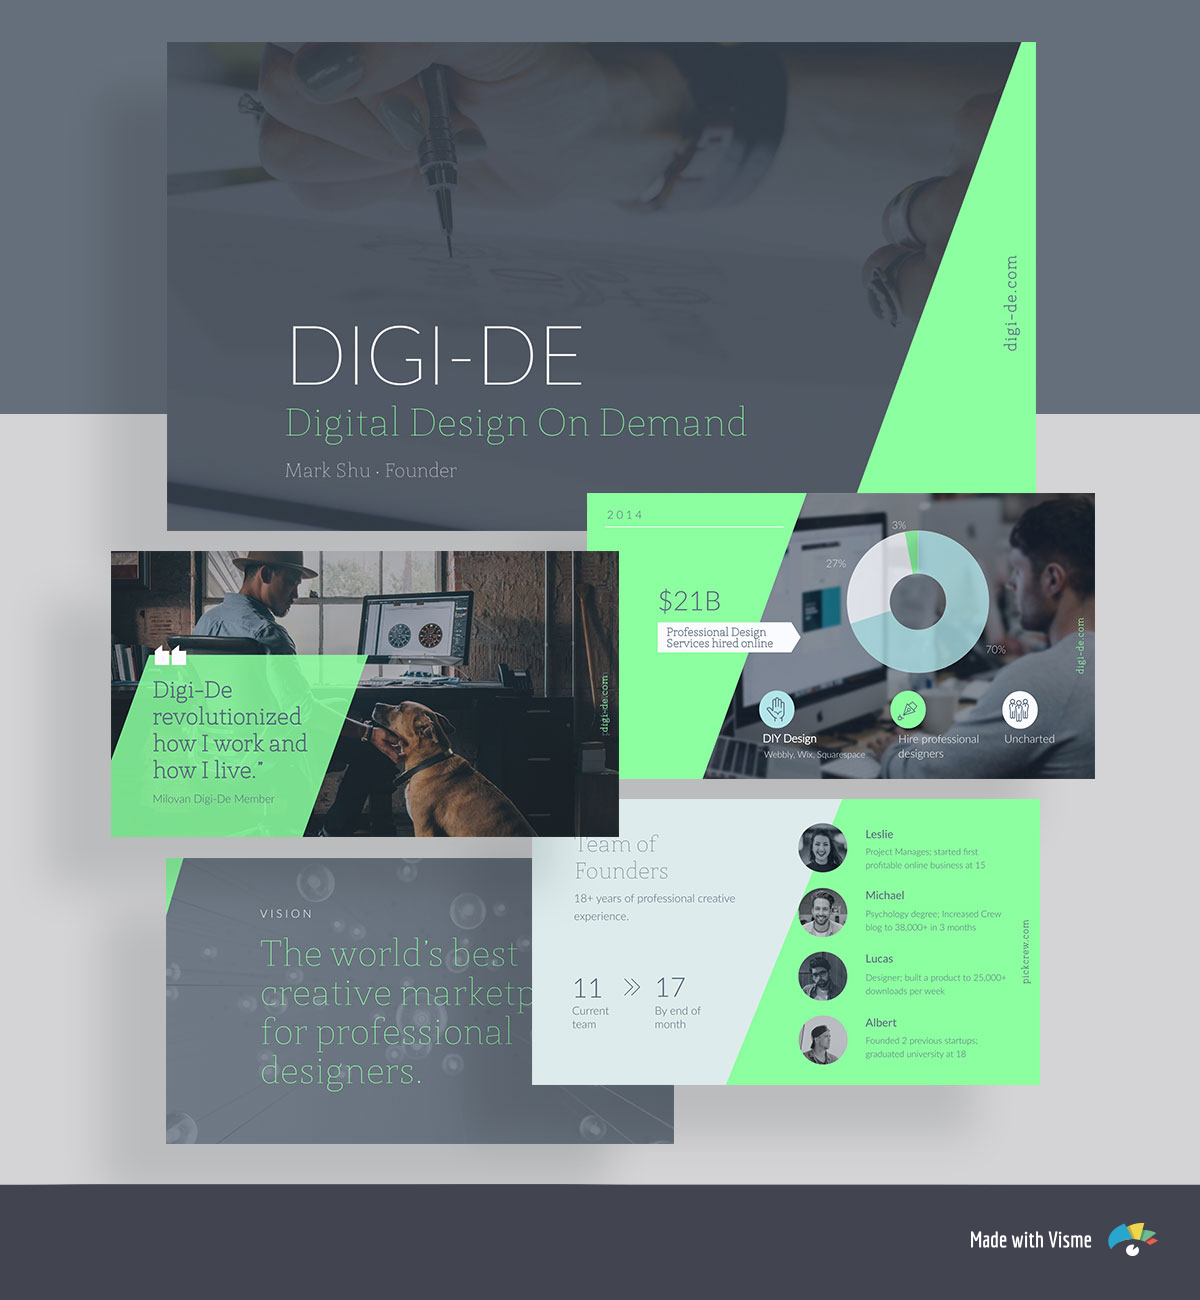 17 Pitch Deck Templates Inspired By Real-Life Startups and